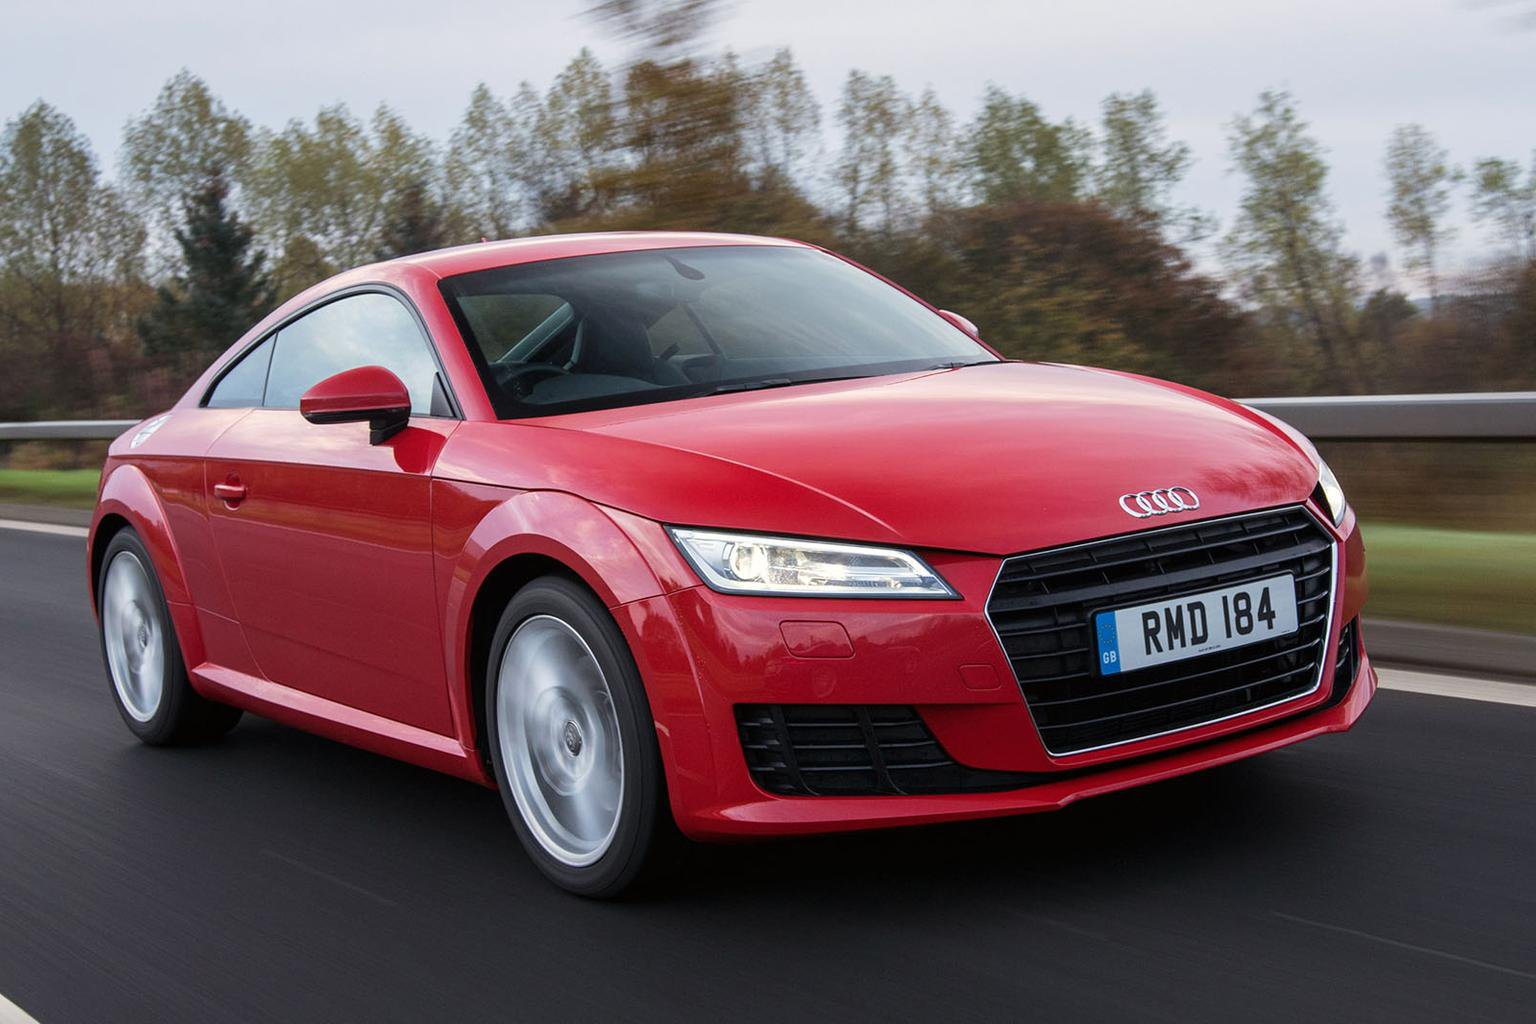 Best car deals for less than £400 per month